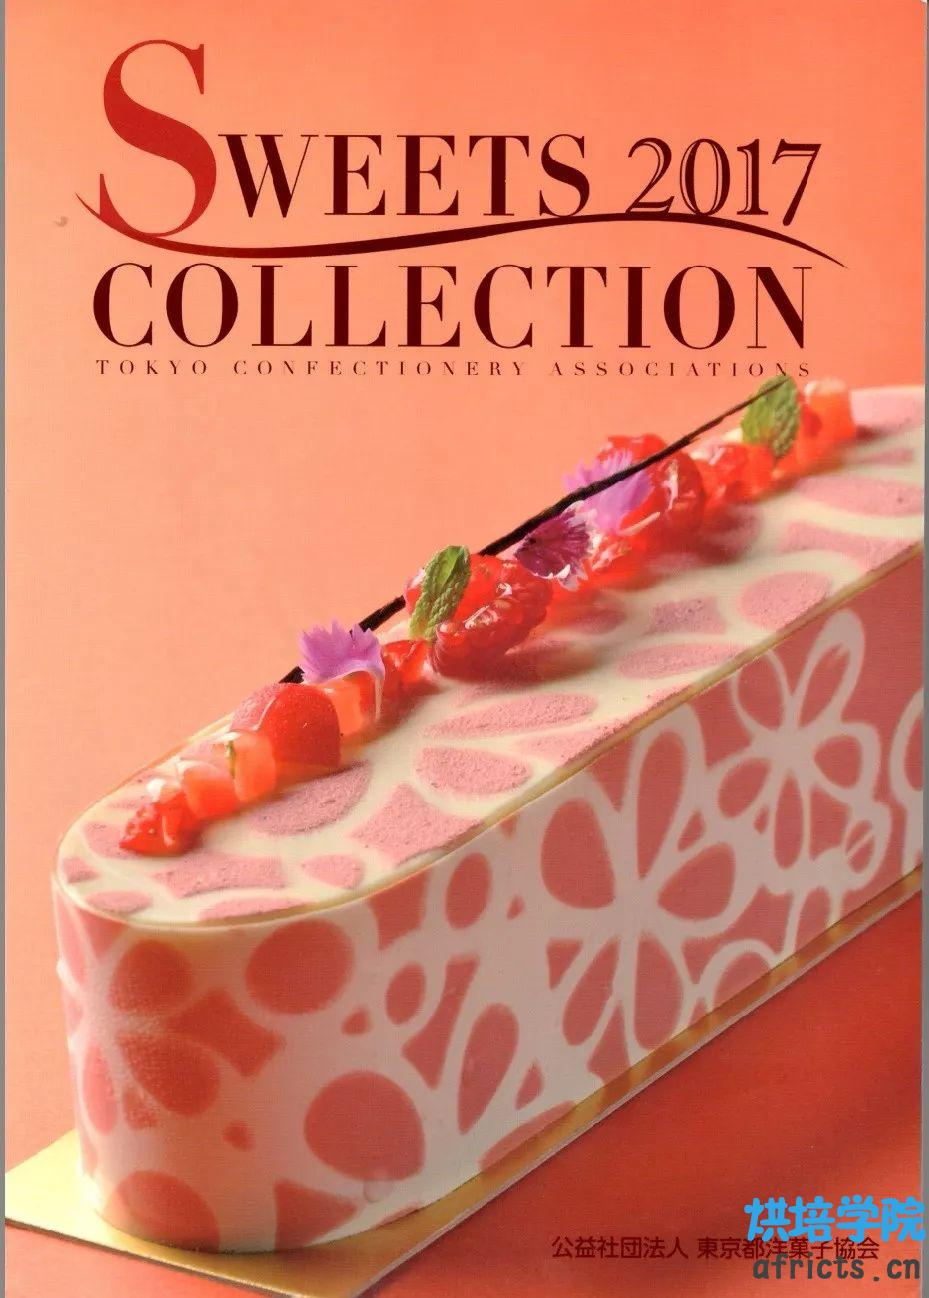 《sweets collection》—日本洋果子协会联合会